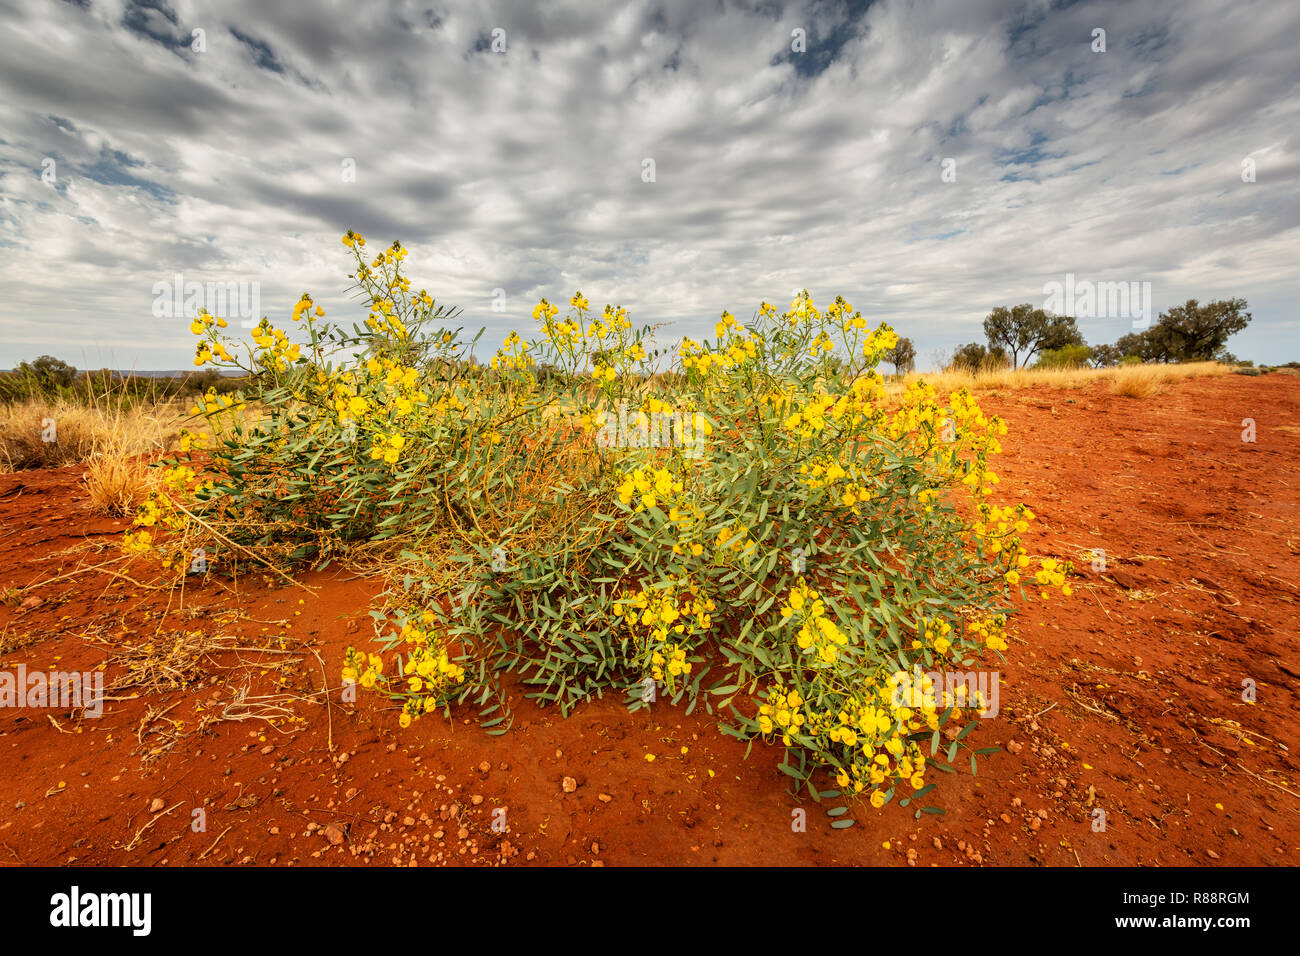 Desert Cassia in bloom after some rain in the arid Red Centre. - Stock Image